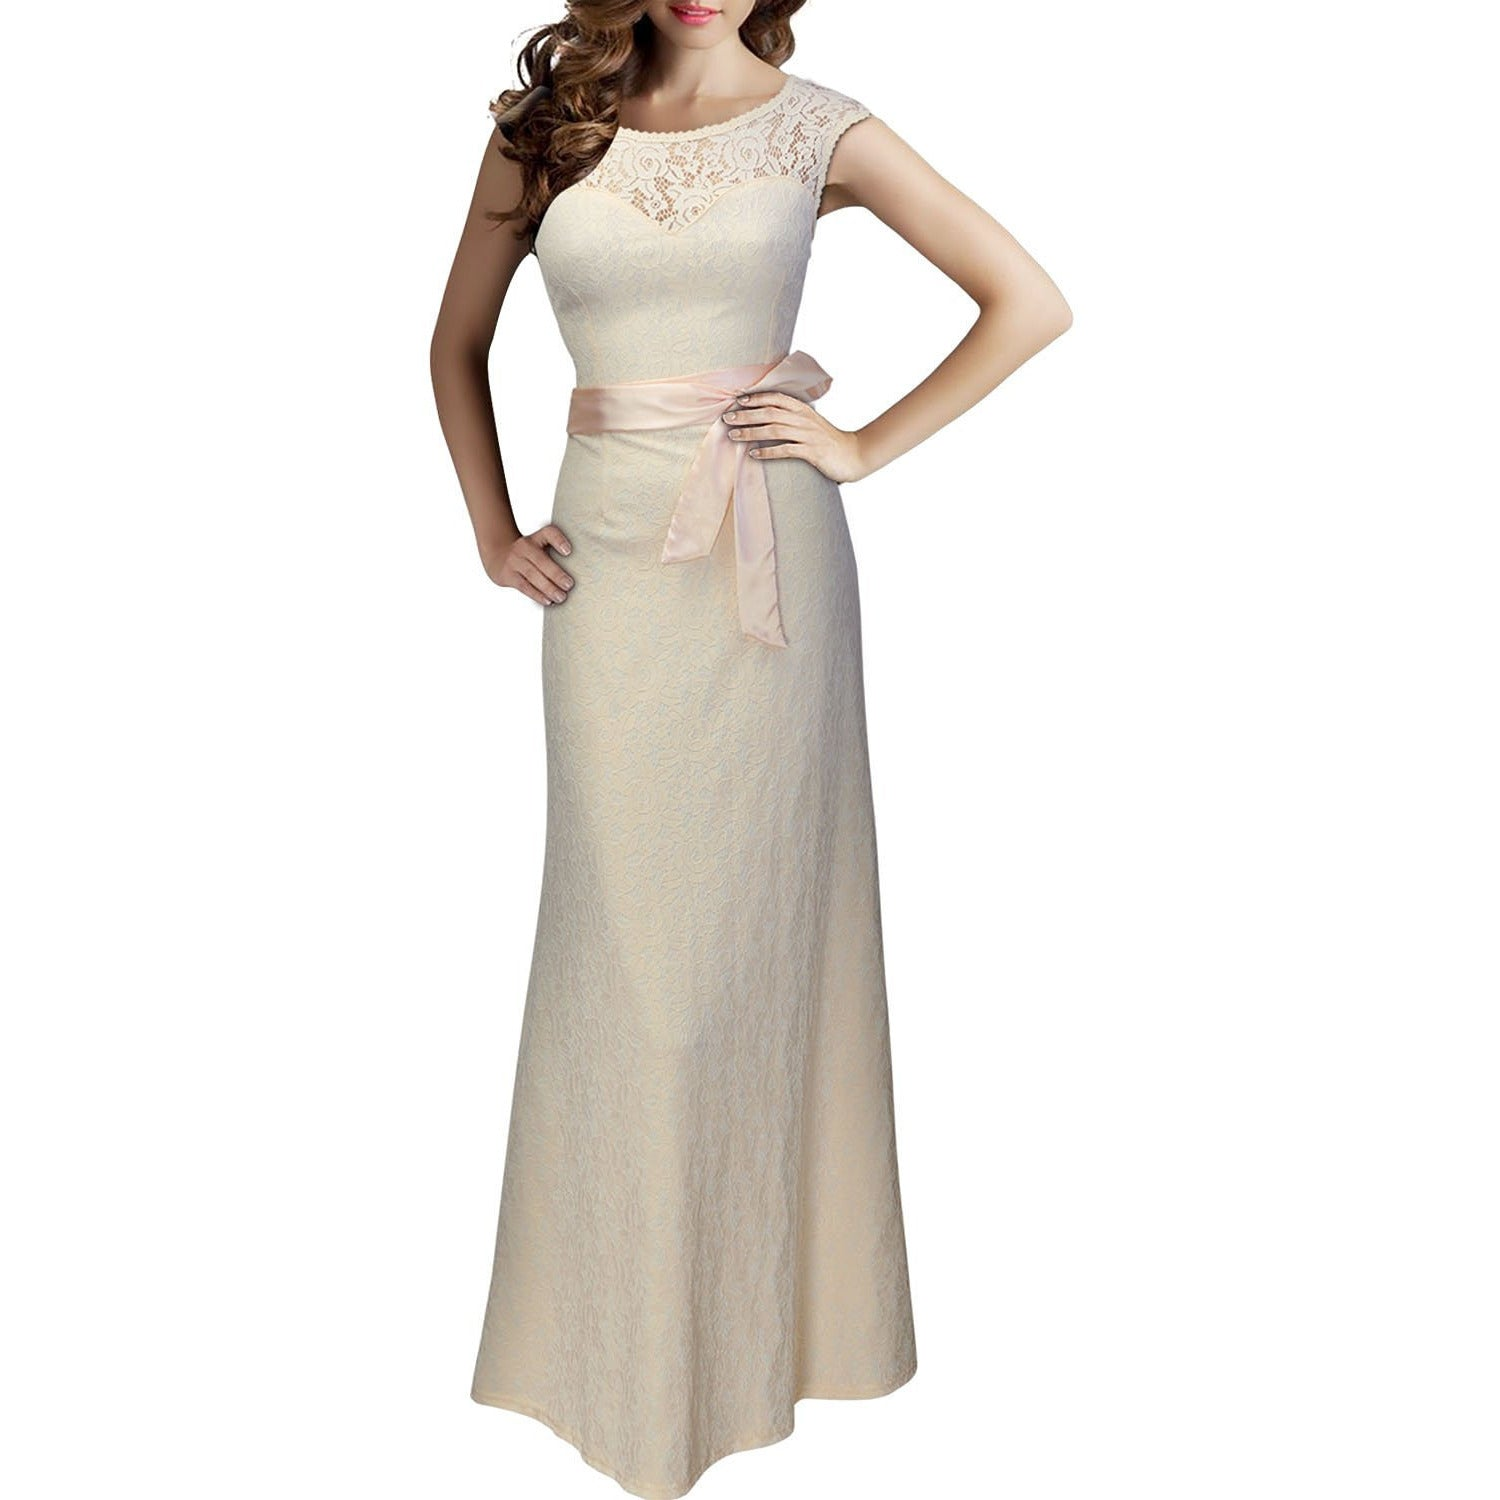 Women's Elegant Floral Lace Sleeveless Halter Bridesmaid Maxi Dress - Indifashion.org